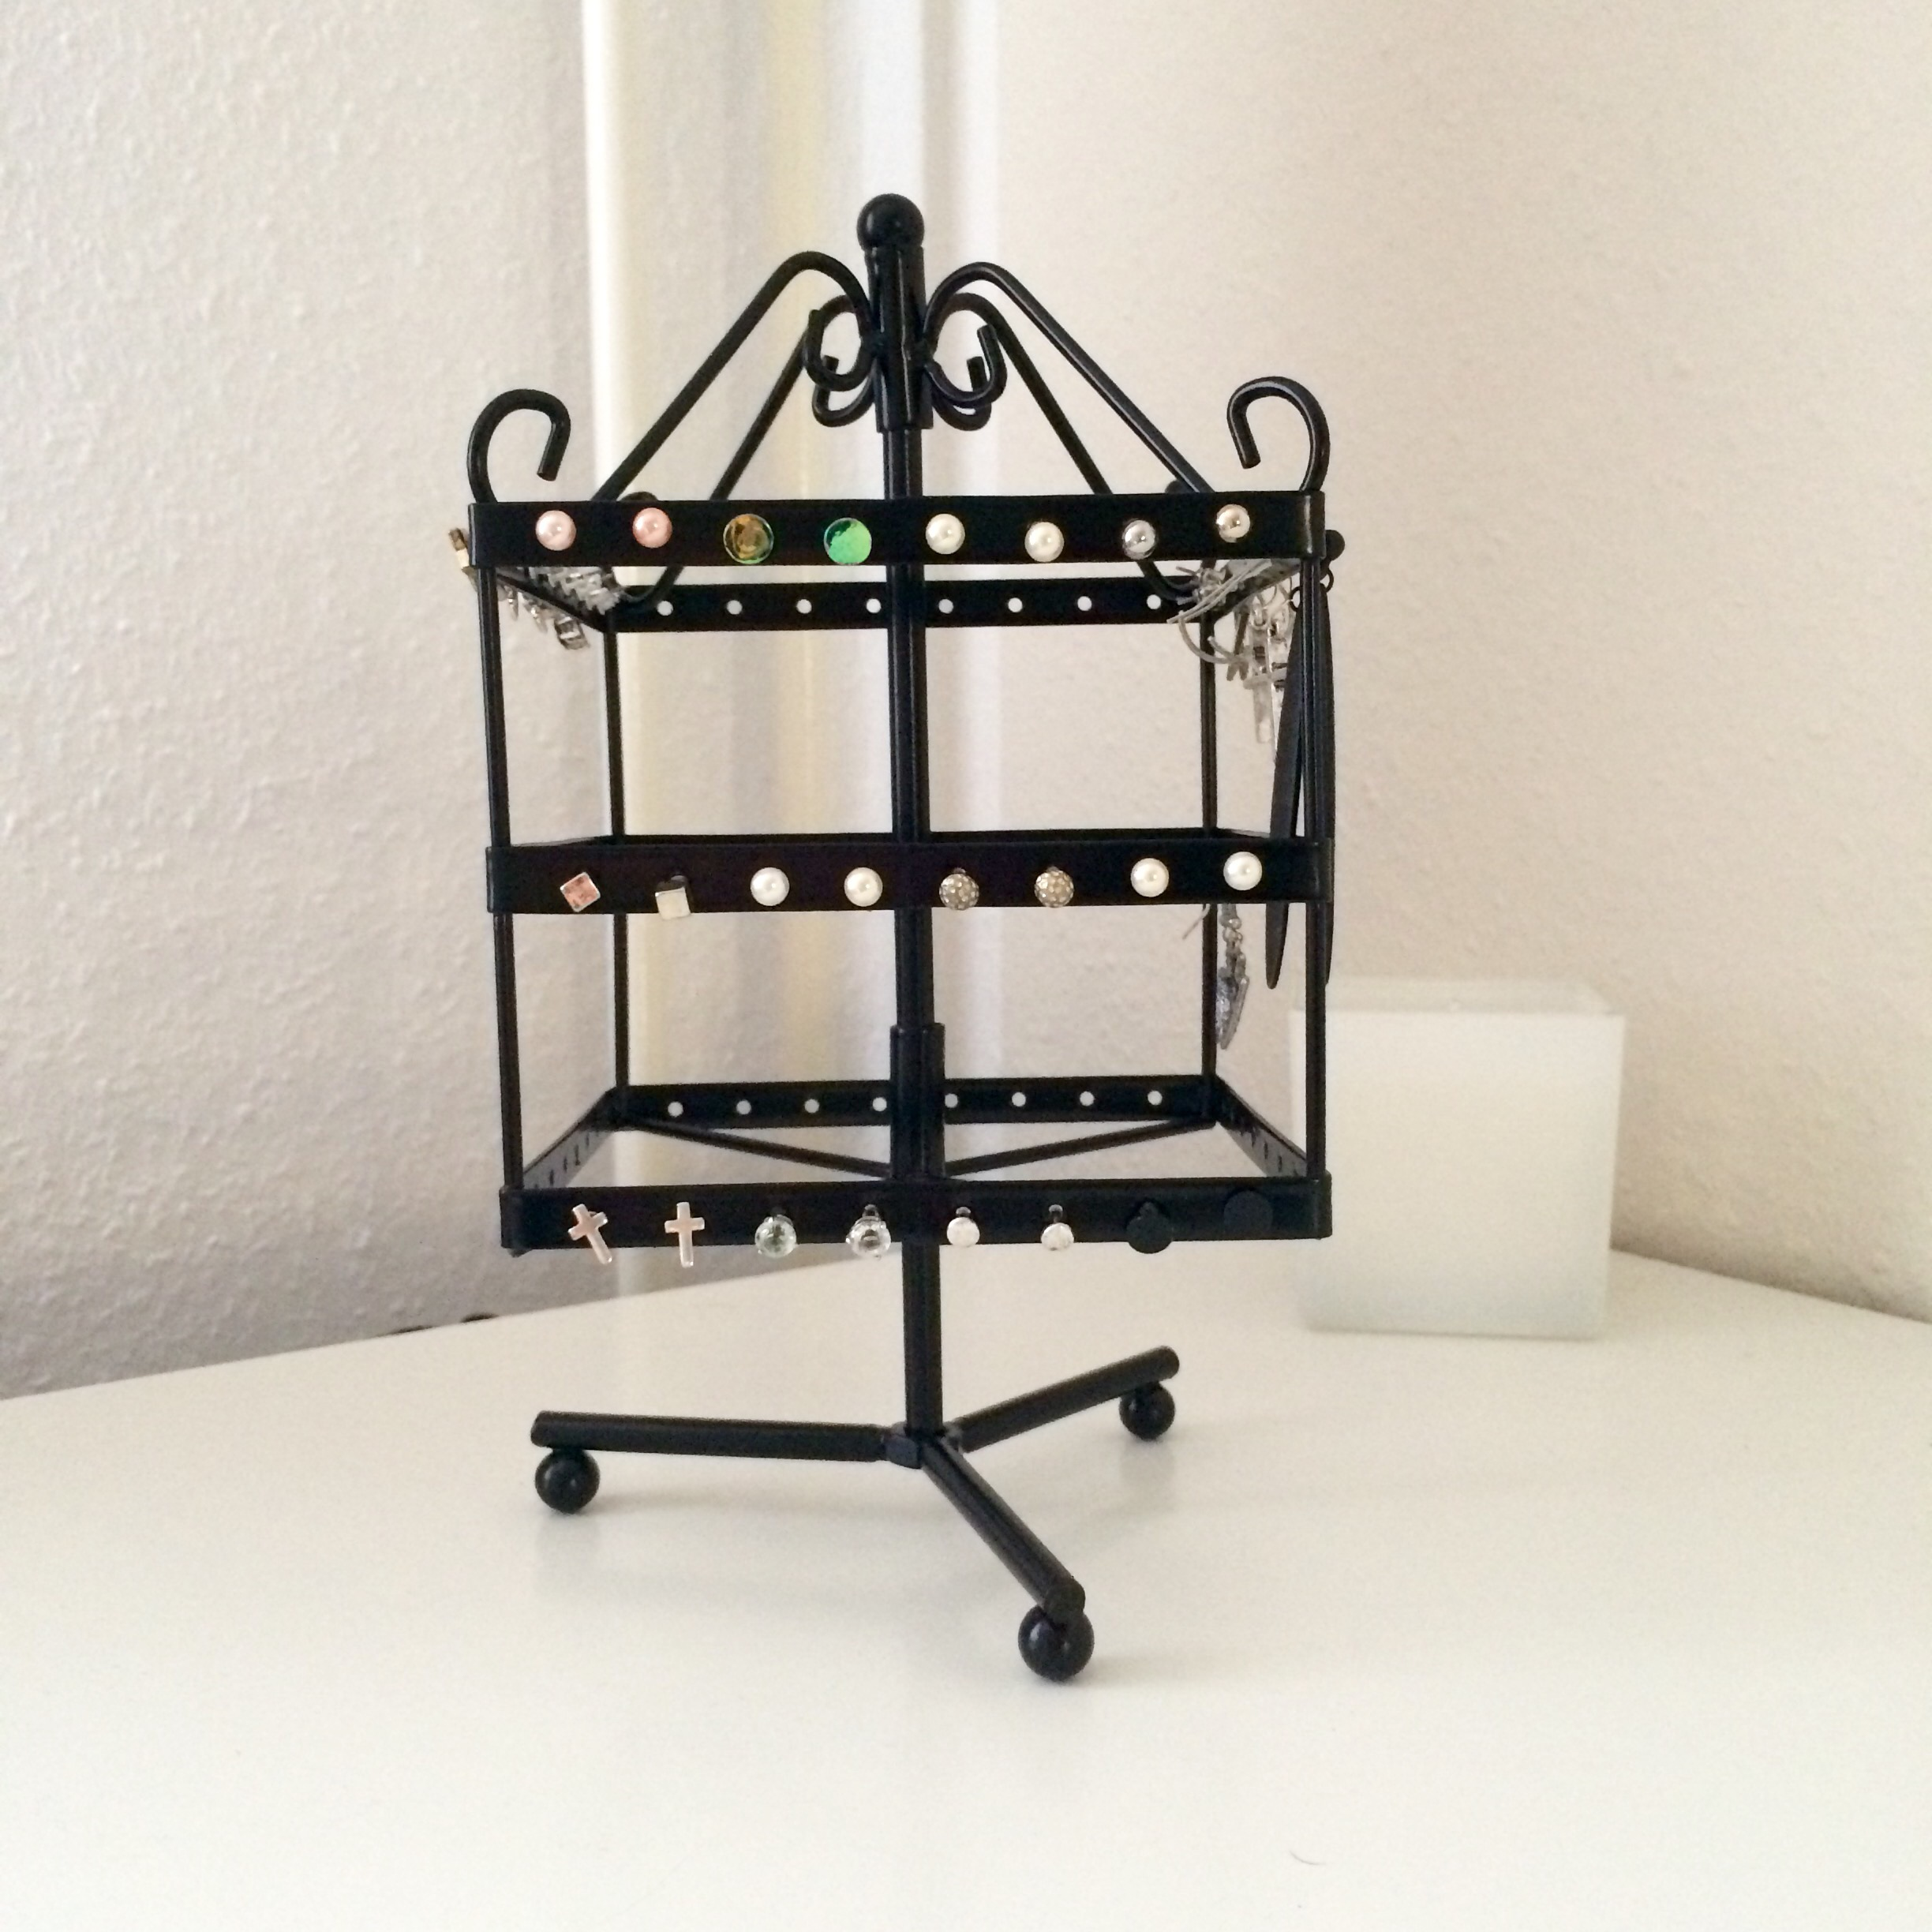 Earring holder from Tiger